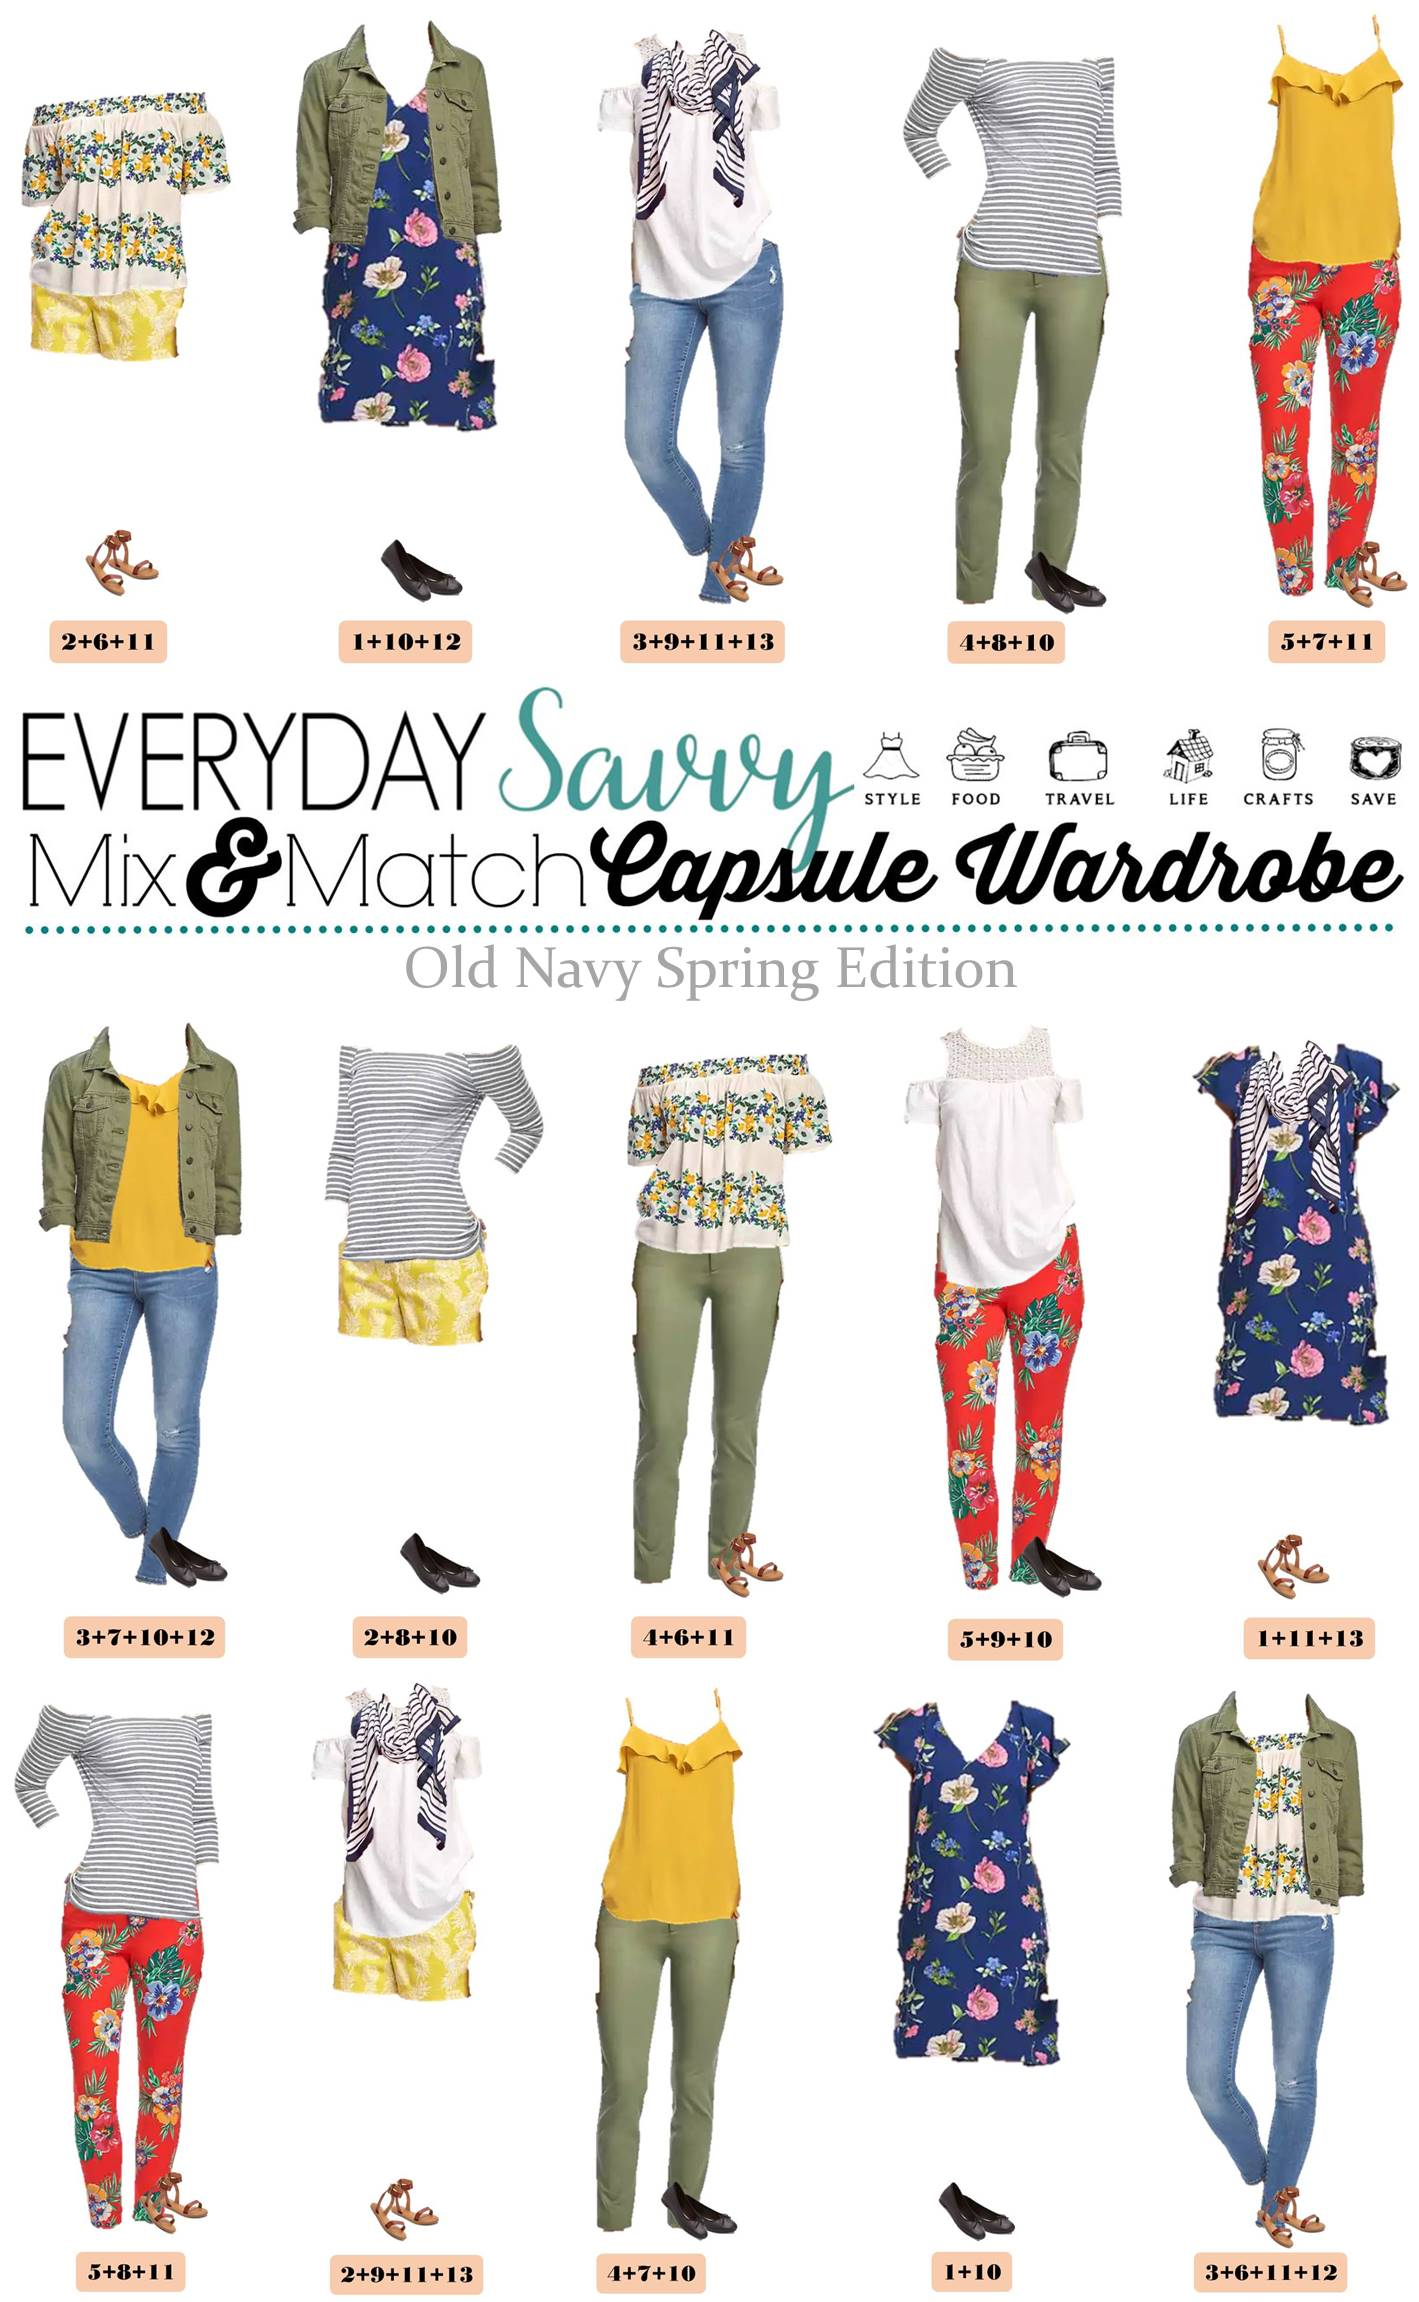 Spring Old Navy Capsule Wardrobe - Mix u0026 Match Outfits